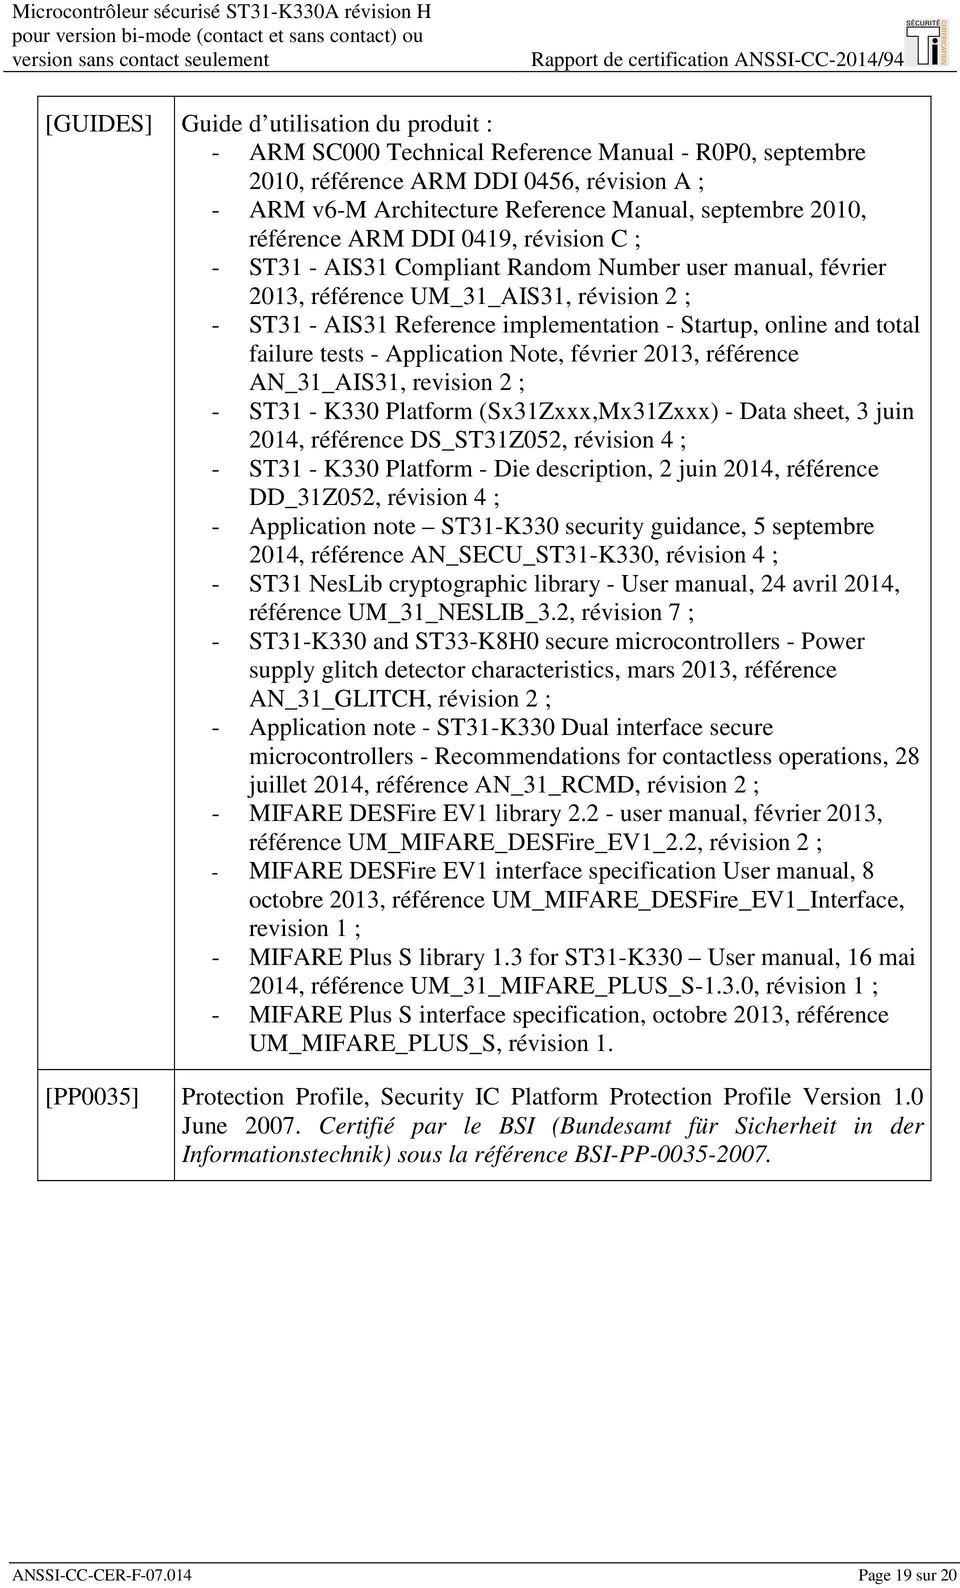 révision C ; - ST31 - AIS31 Compliant Random Number user manual, février 2013, référence UM_31_AIS31, révision 2 ; - ST31 - AIS31 Reference implementation - Startup, online and total failure tests -